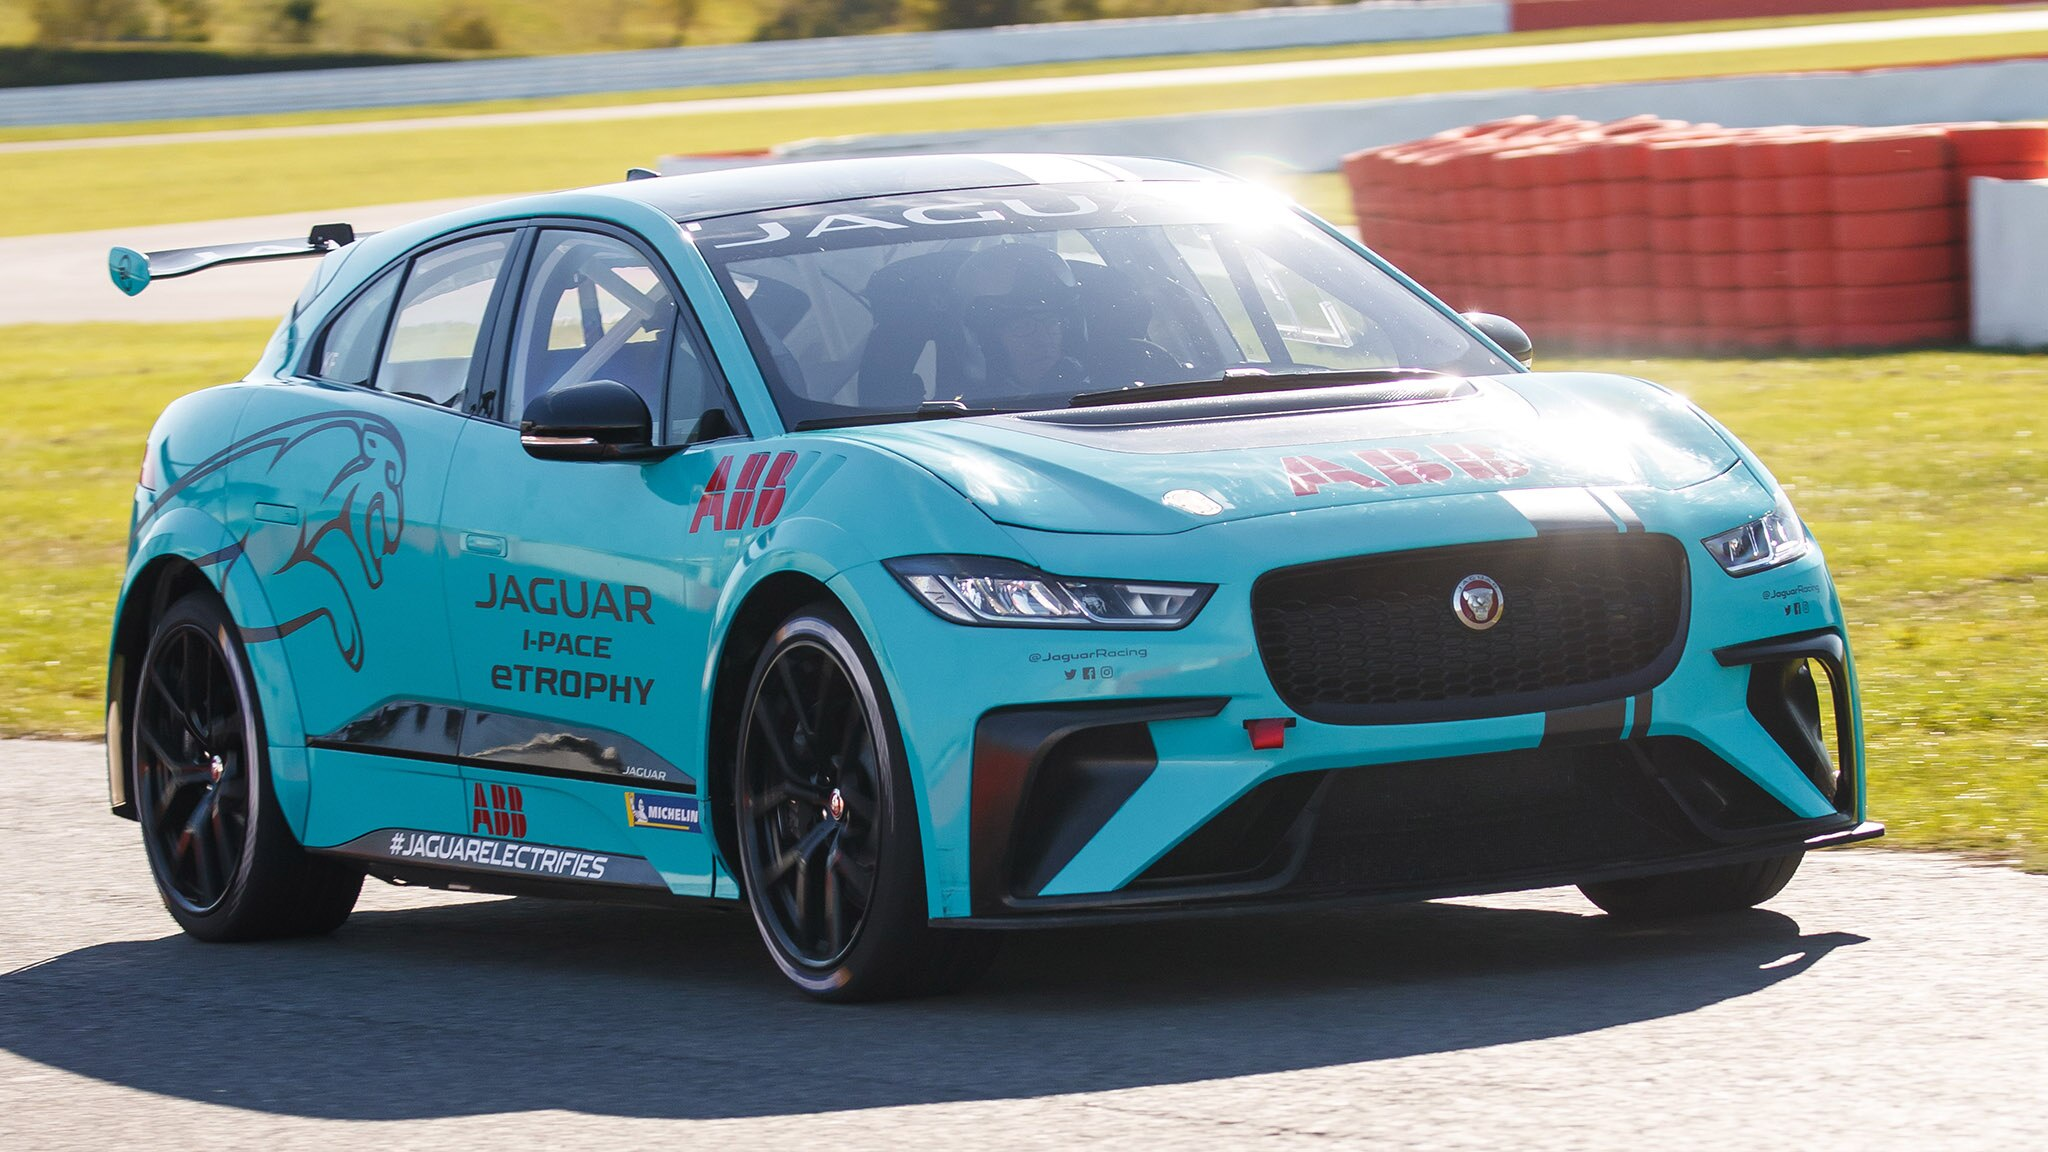 My Cornering Speed Limits Were Determined By How Much I Could Rotate The  I Pace On Entry. It Behaves Very Much Like Most All Wheel Drive Cars On A  Track, ...